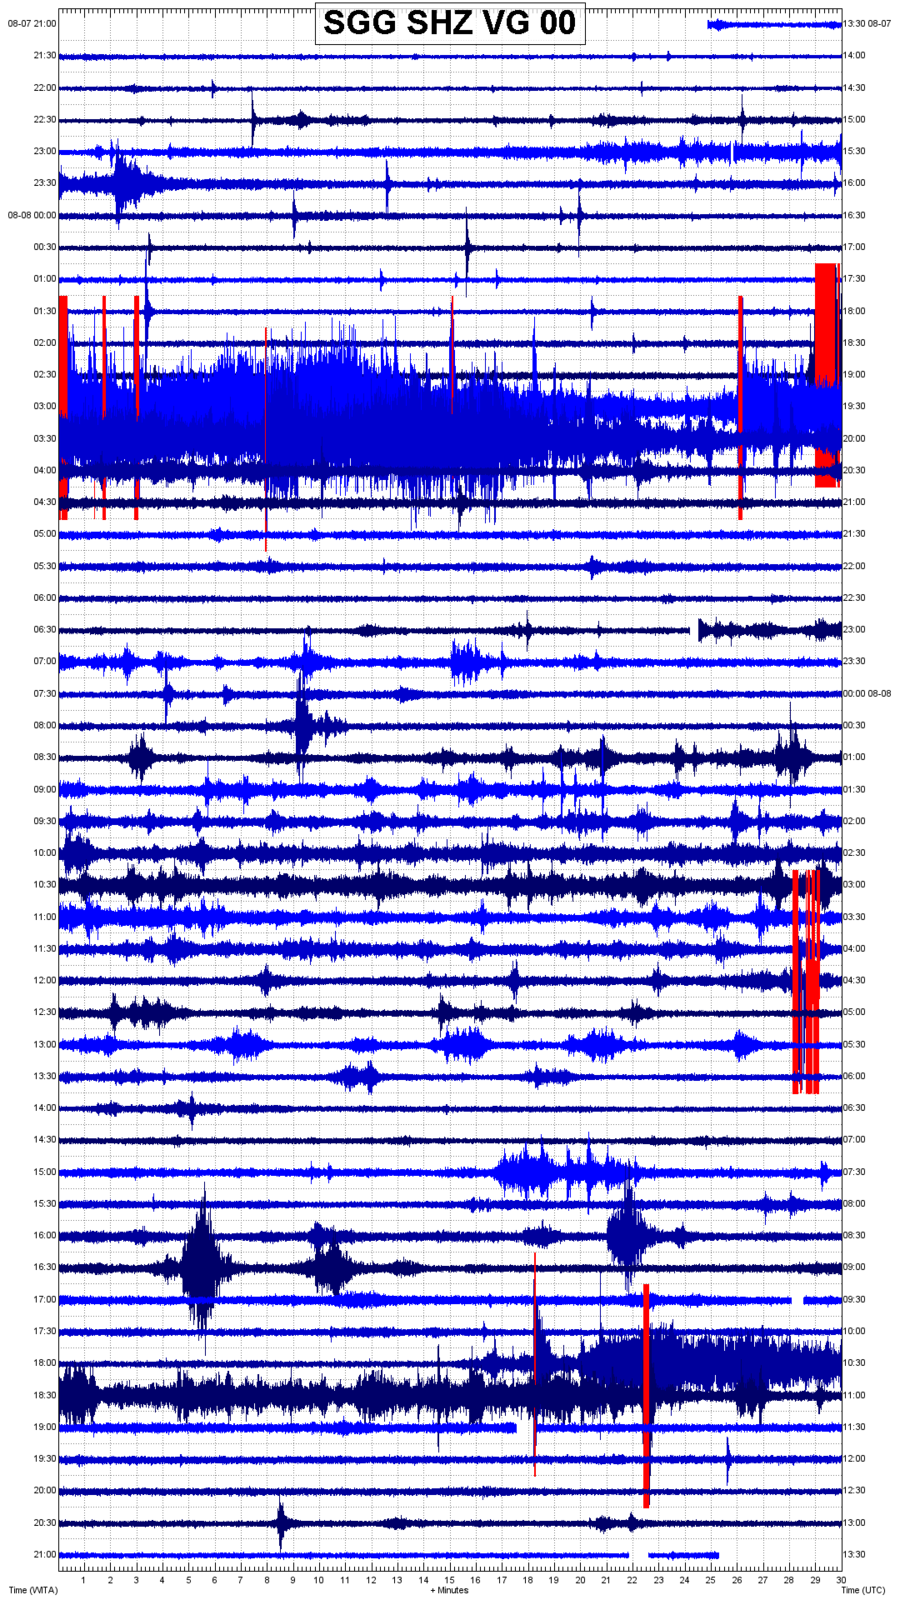 Sinabung - seismicity table as of 08.08.2020 and seismogram of the day - Magma Indonesia